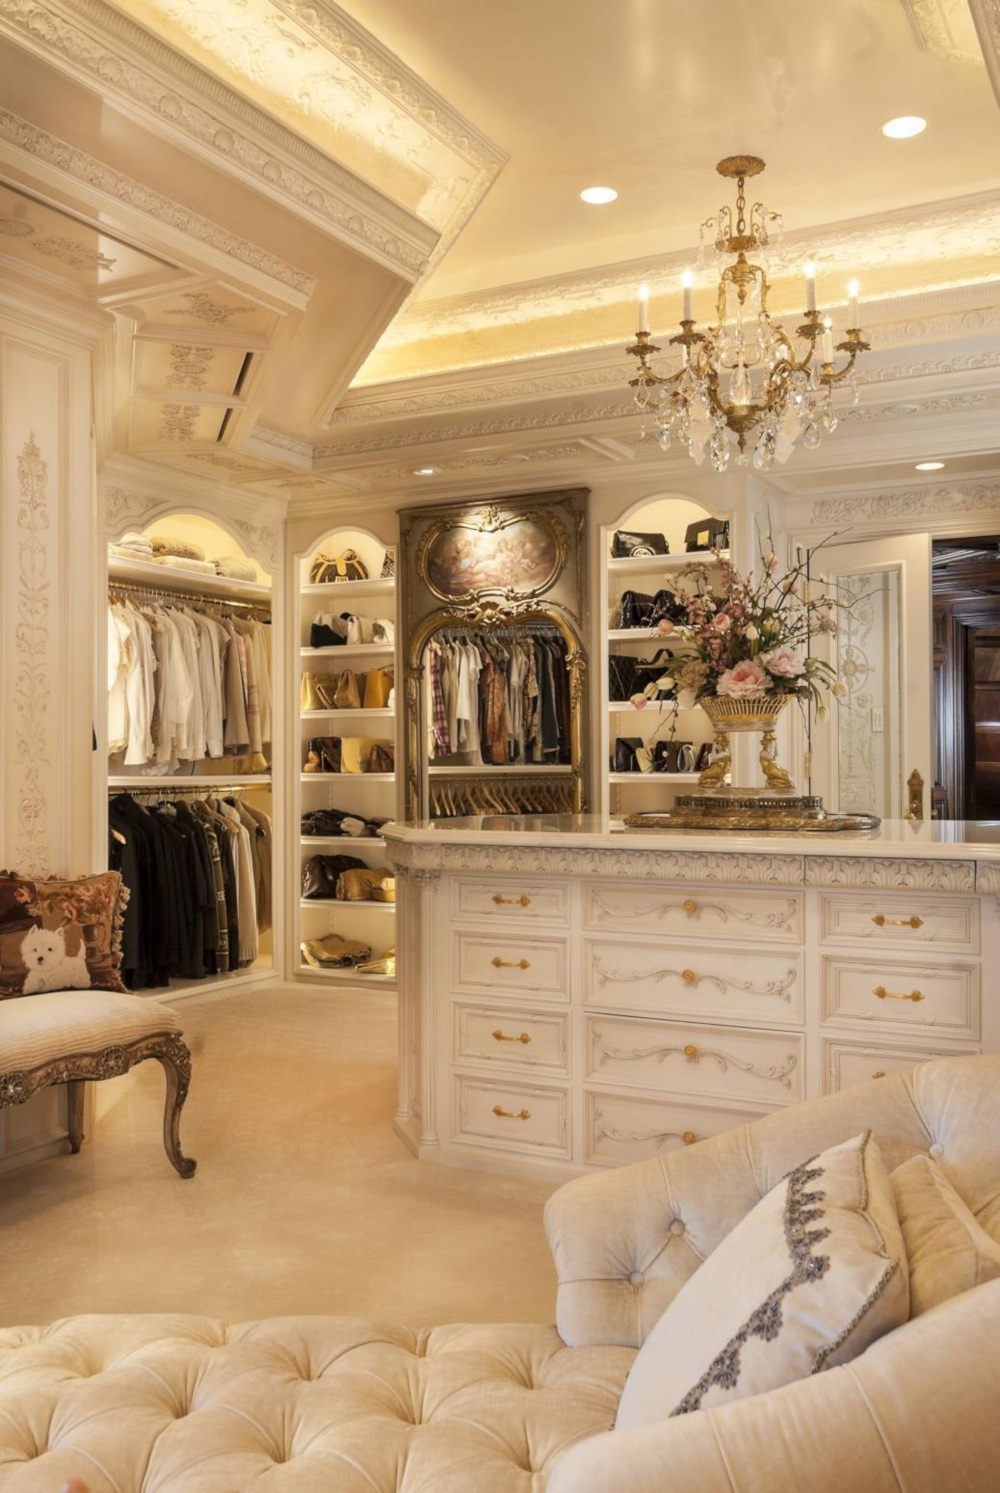 5 Luxury Closet Decor Ideas 05 luxury closet decor ideas 5 Luxury Closet Decor Ideas 5 Luxury Closet Decor Ideas 05